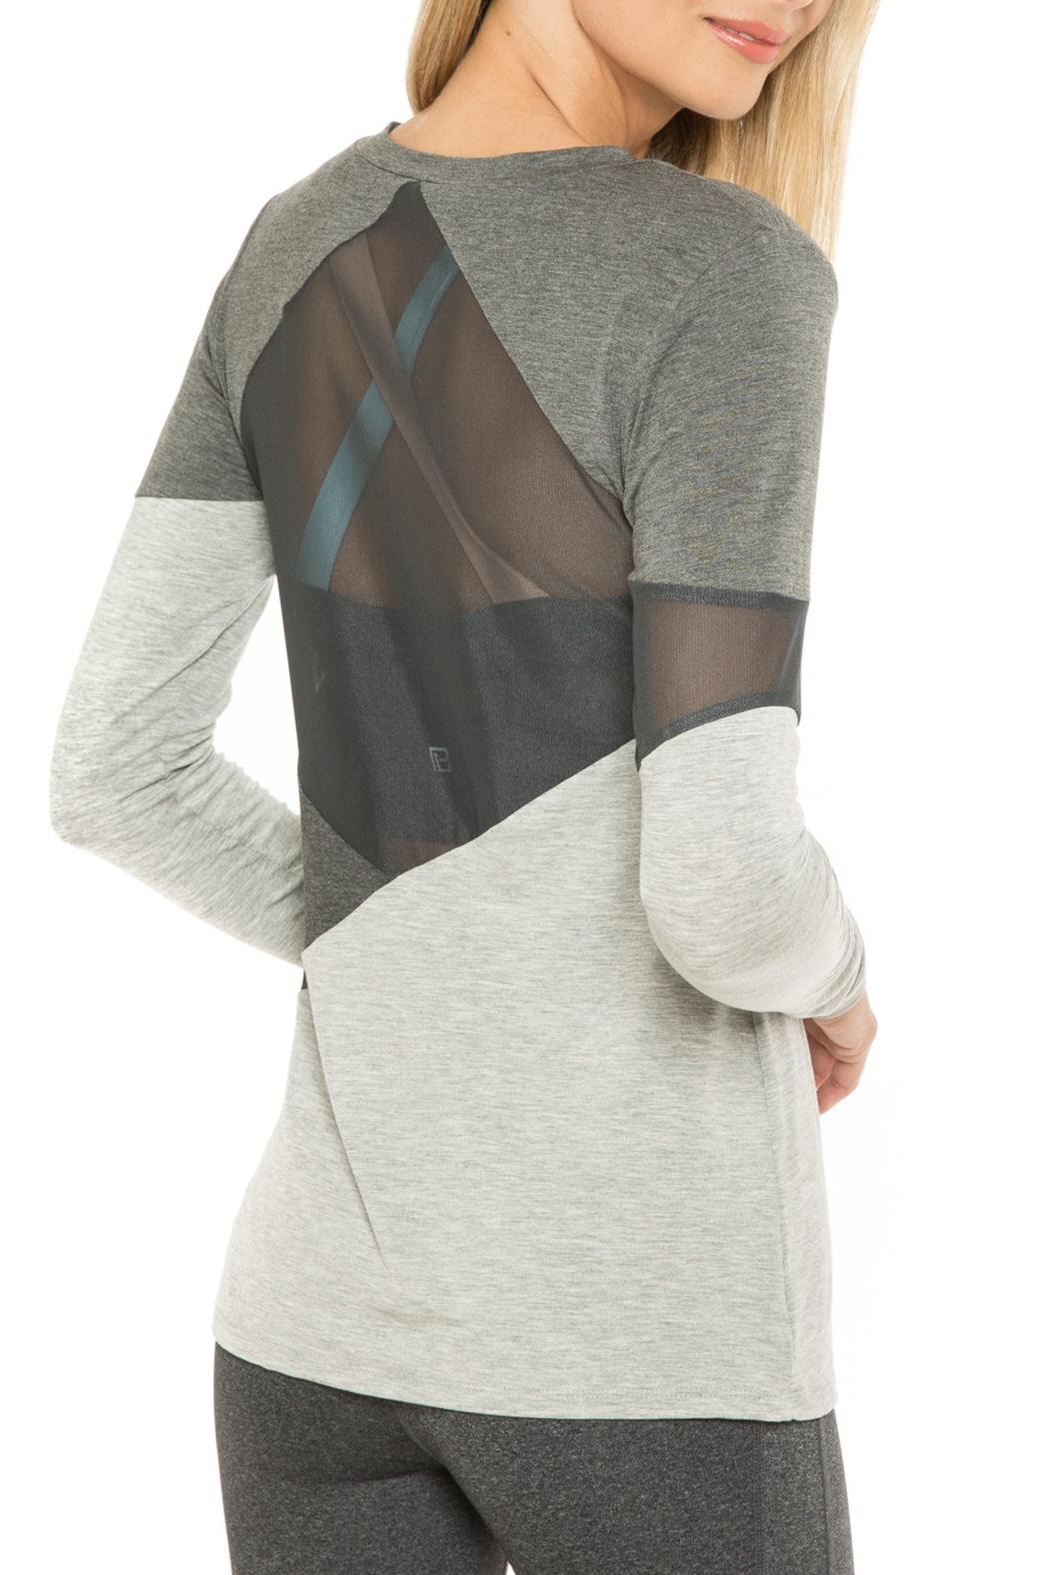 Body Language Aven Pullover Top - Front Full Image